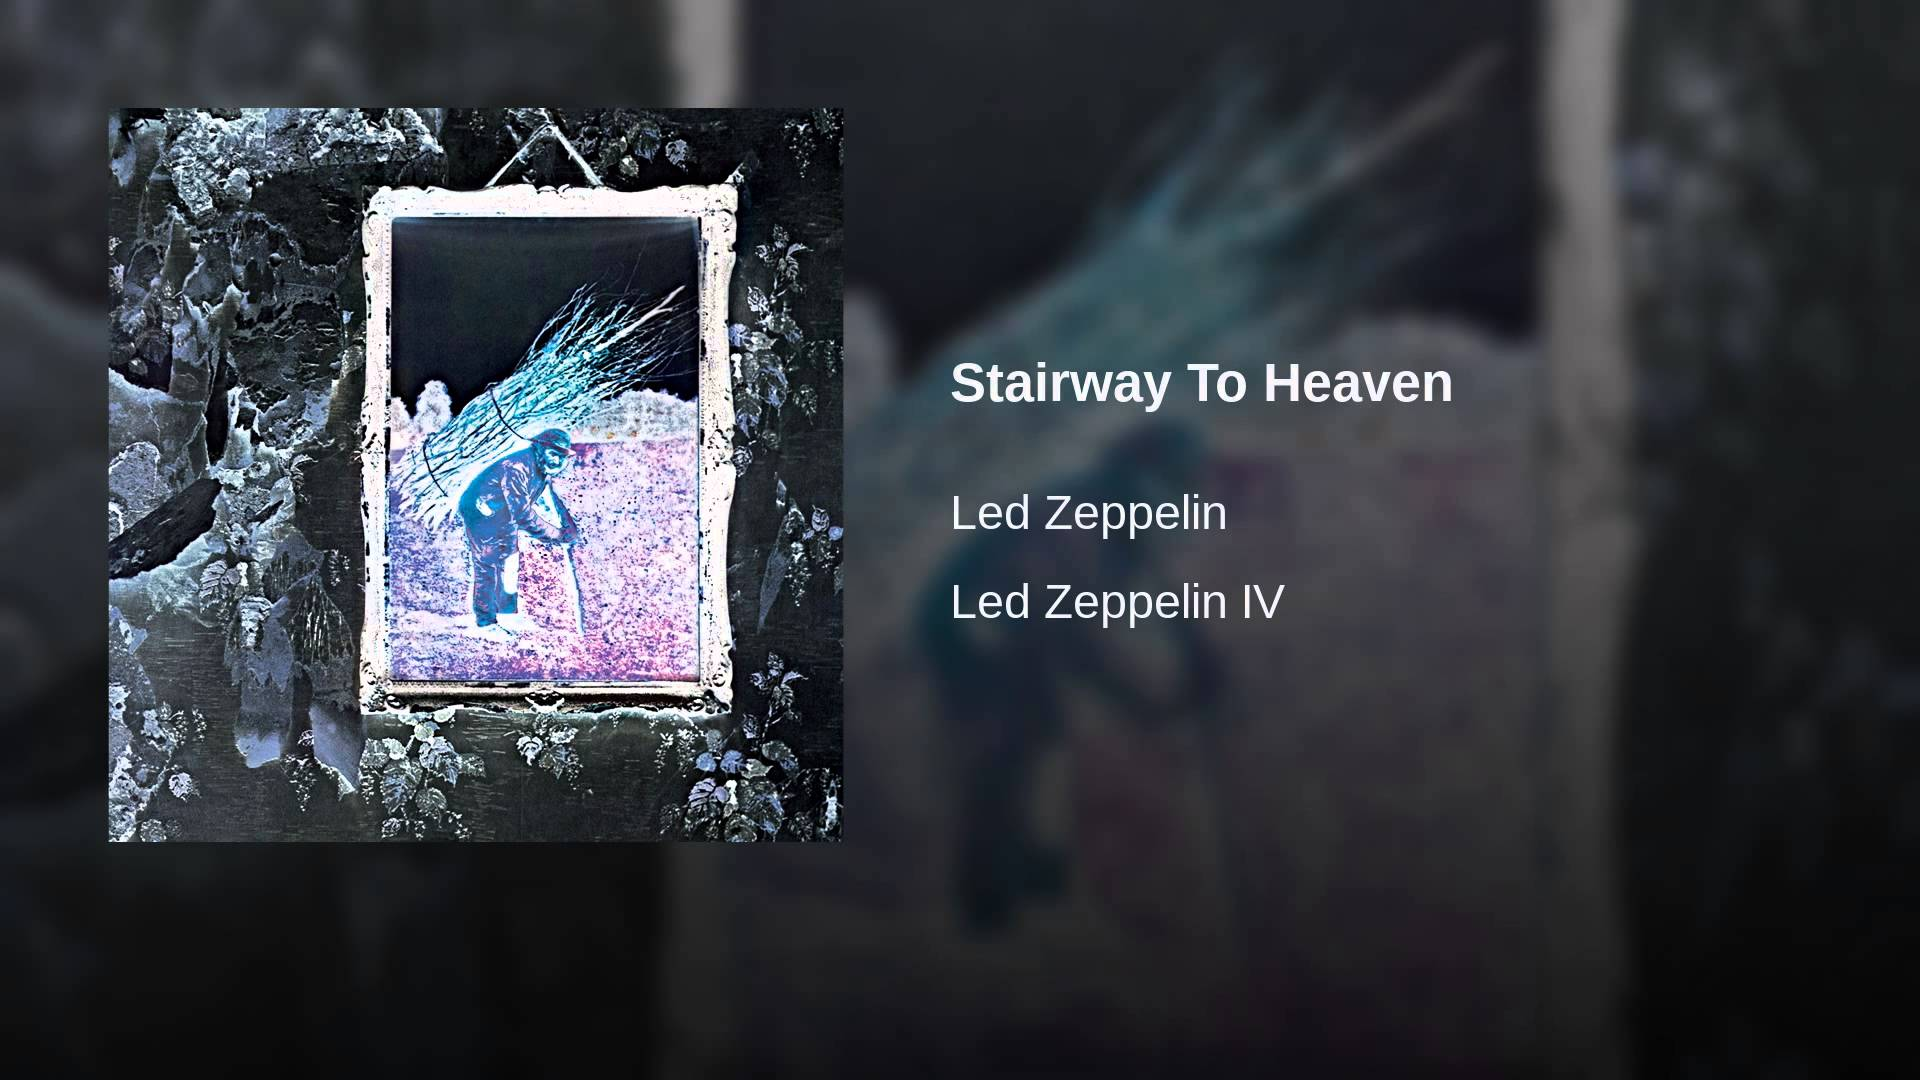 Led Zeppelin returning to court over 'Stairway To Heaven' copyright